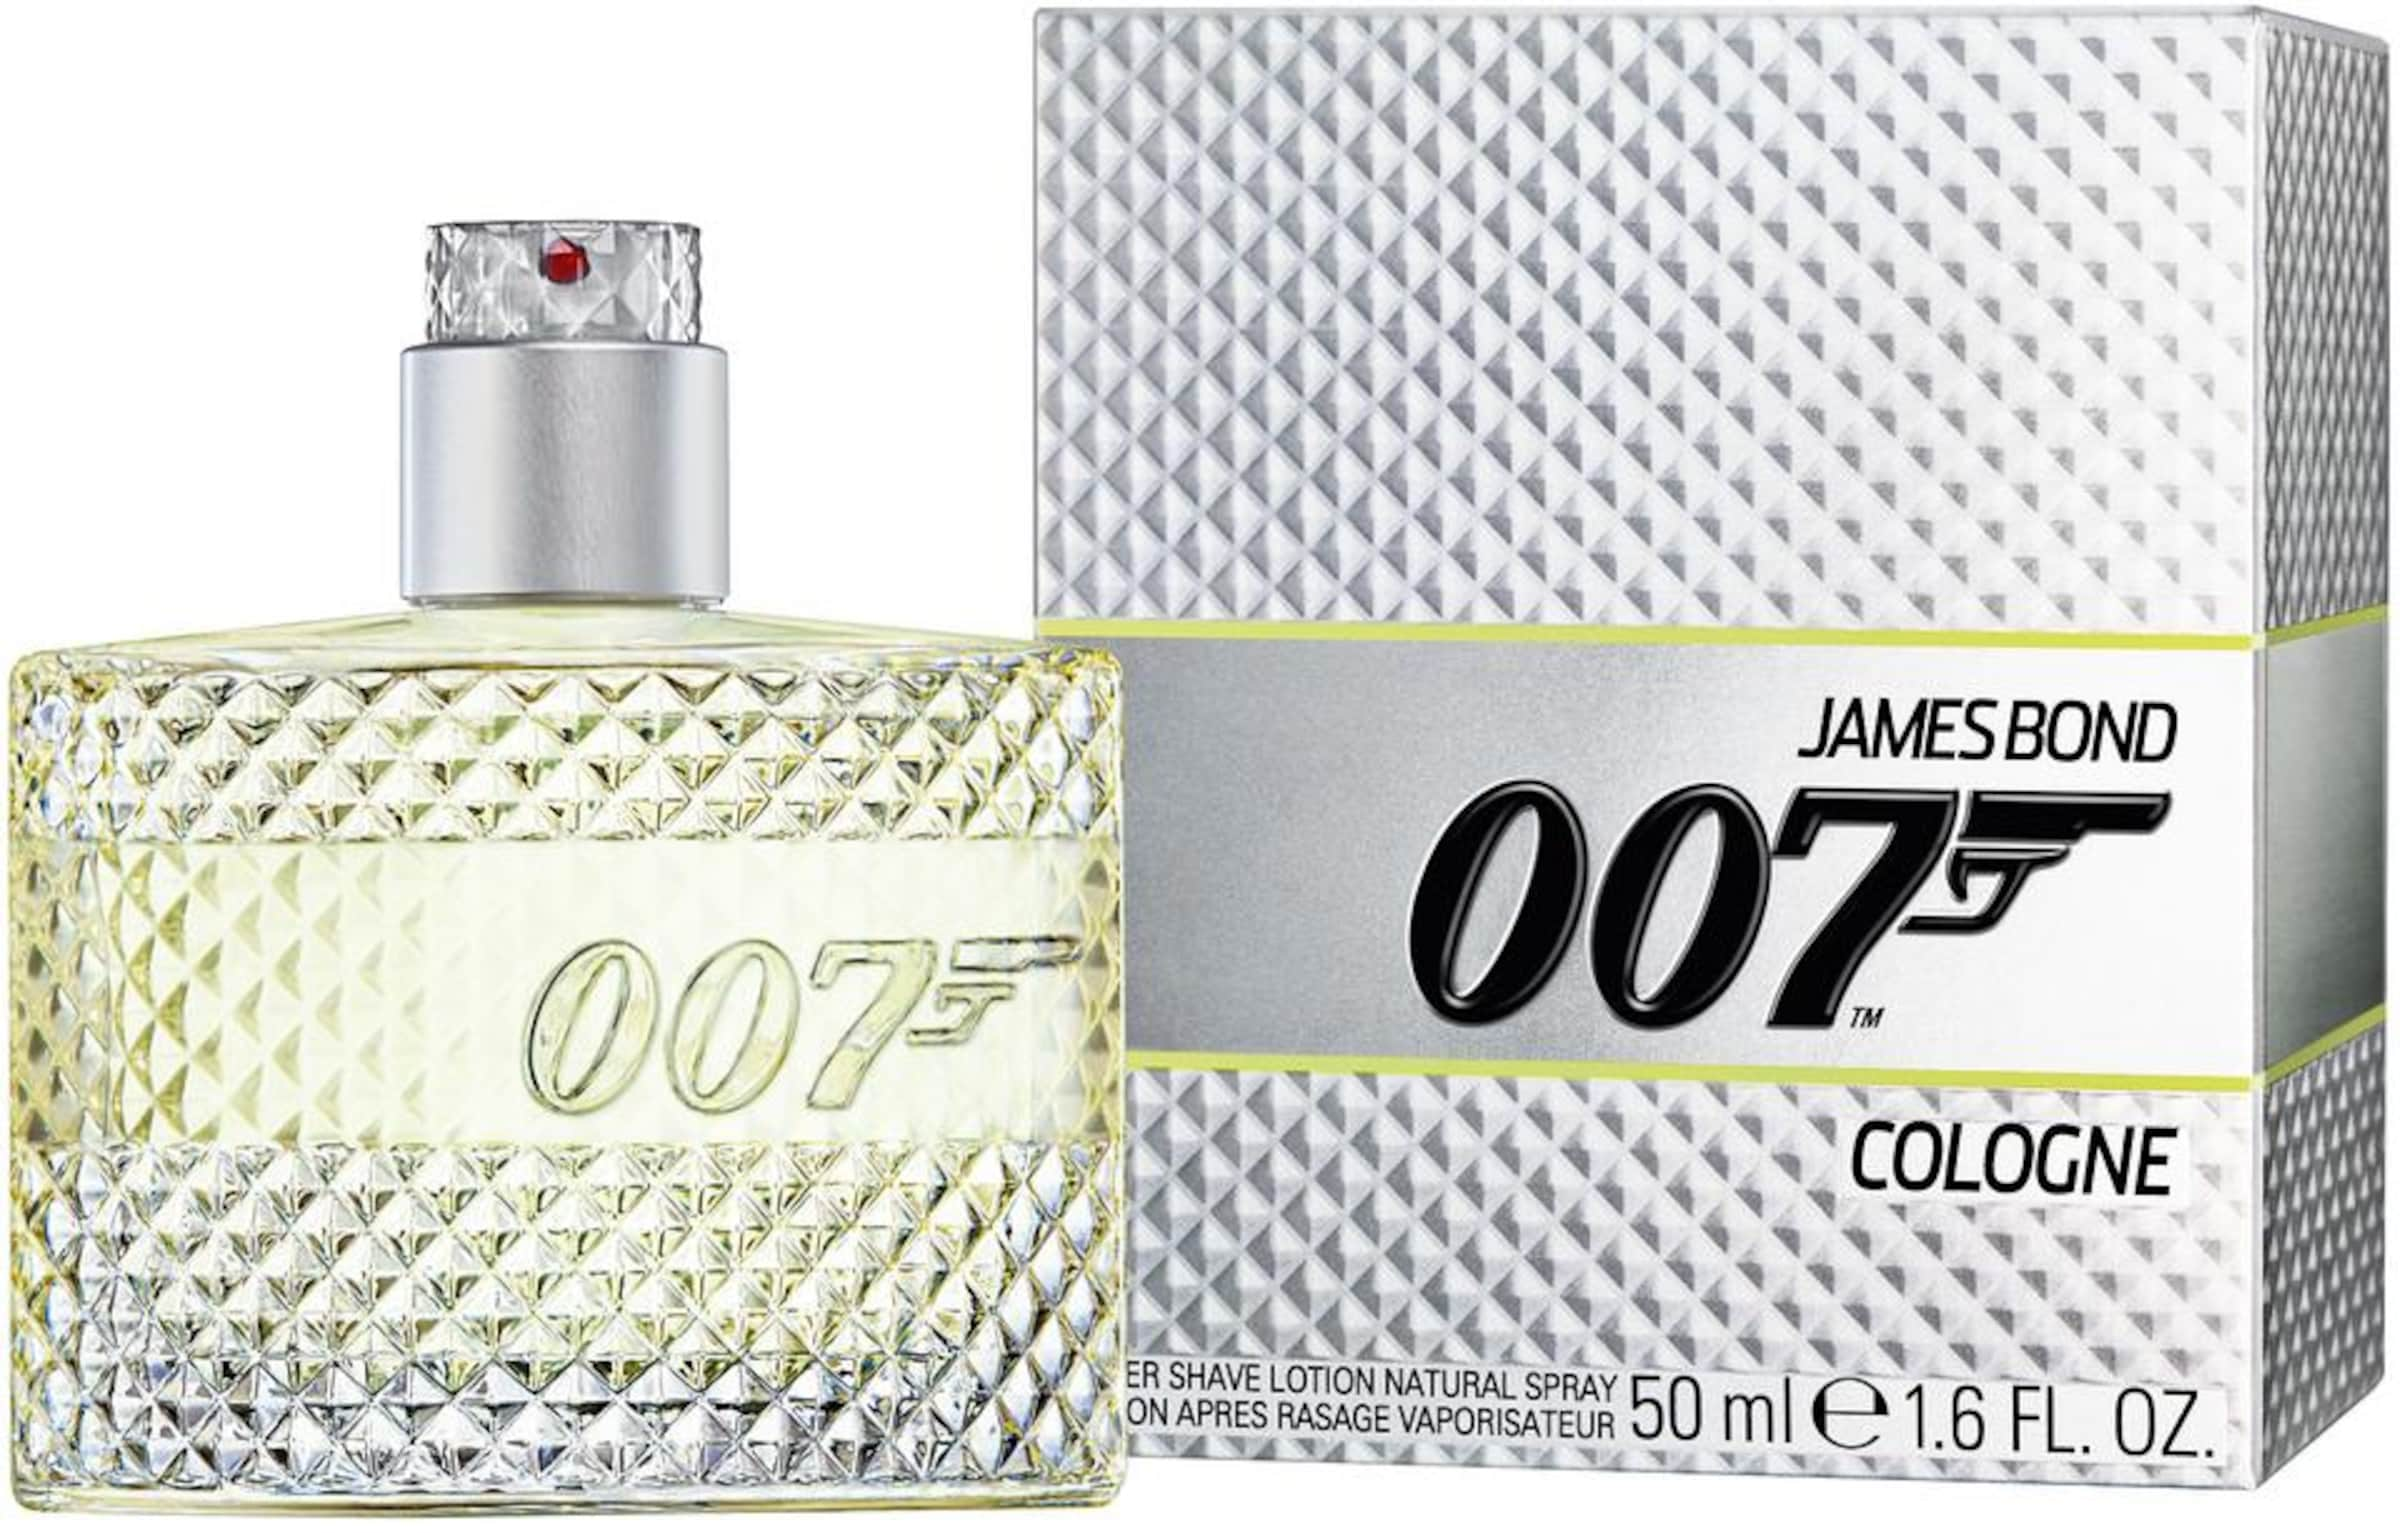 In HellgelbRauchgrau 'cologne' James 007 Aftershave Bond gYybf76v